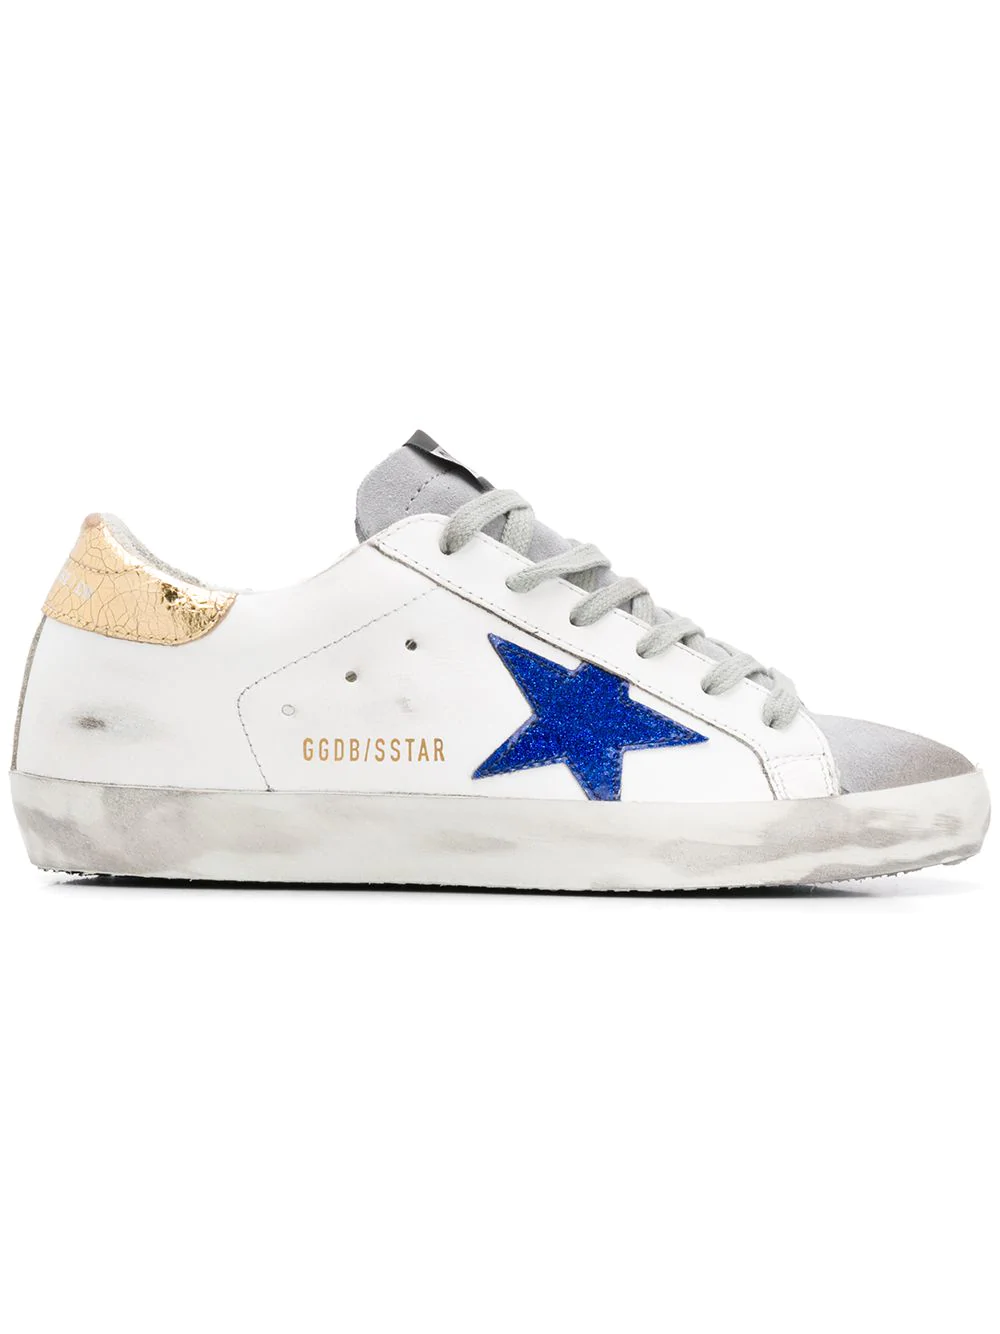 5596d9447bb7 Golden Goose Superstar Sneakers - White